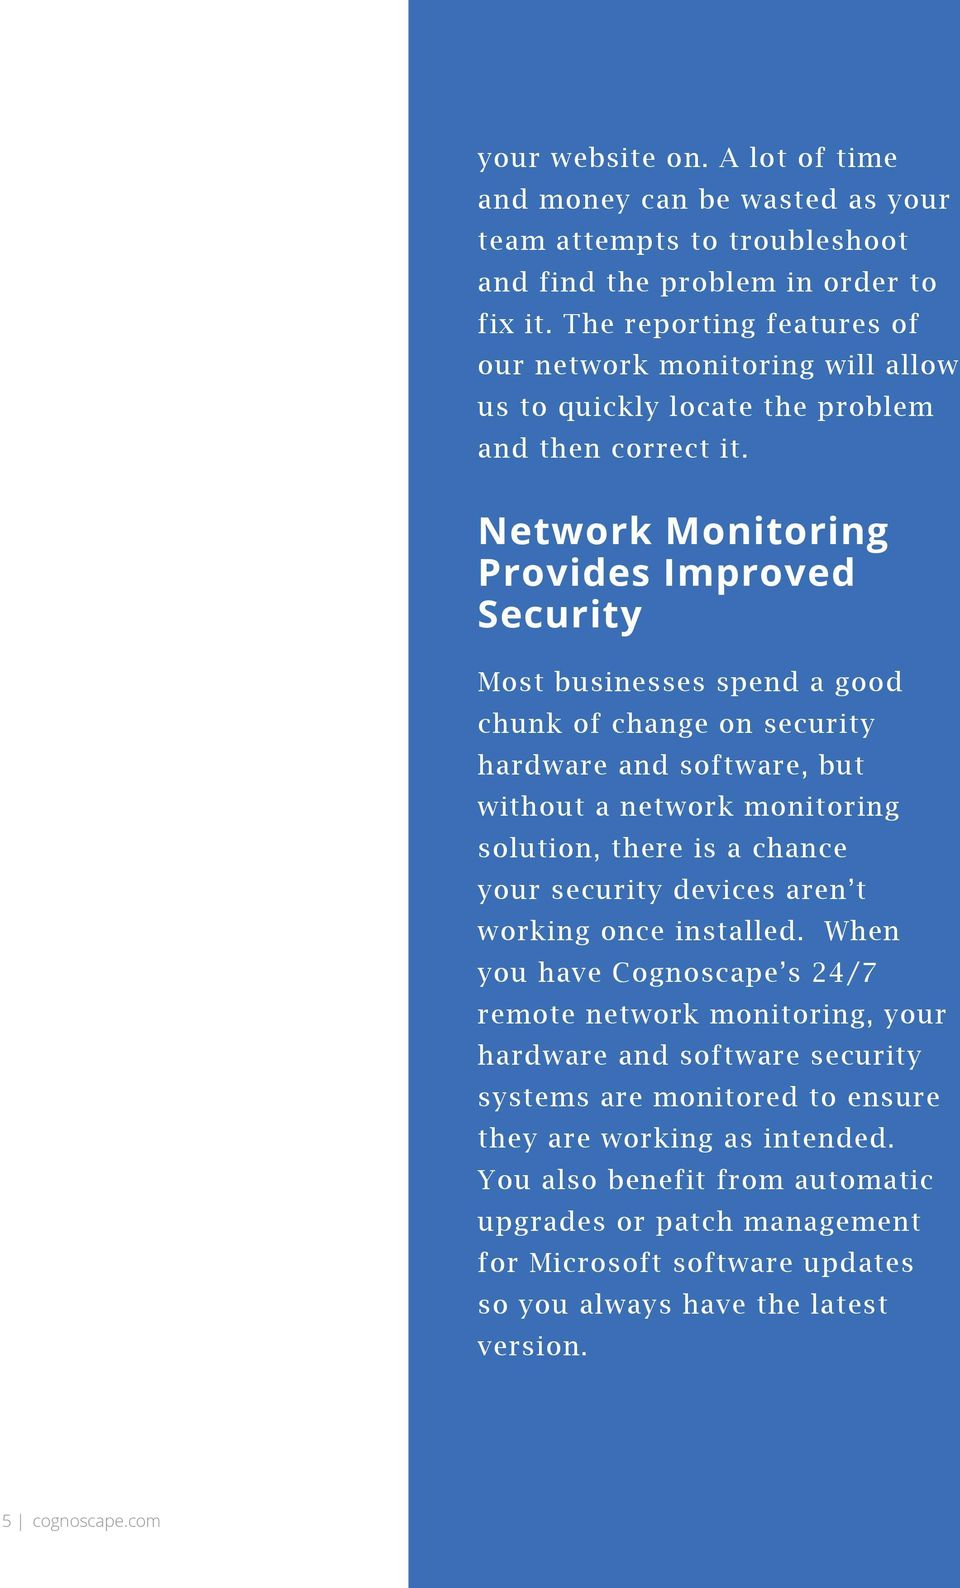 Network Monitoring Provides Improved Security Most businesses spend a good chunk of change on security hardware and software, but without a network monitoring solution, there is a chance your